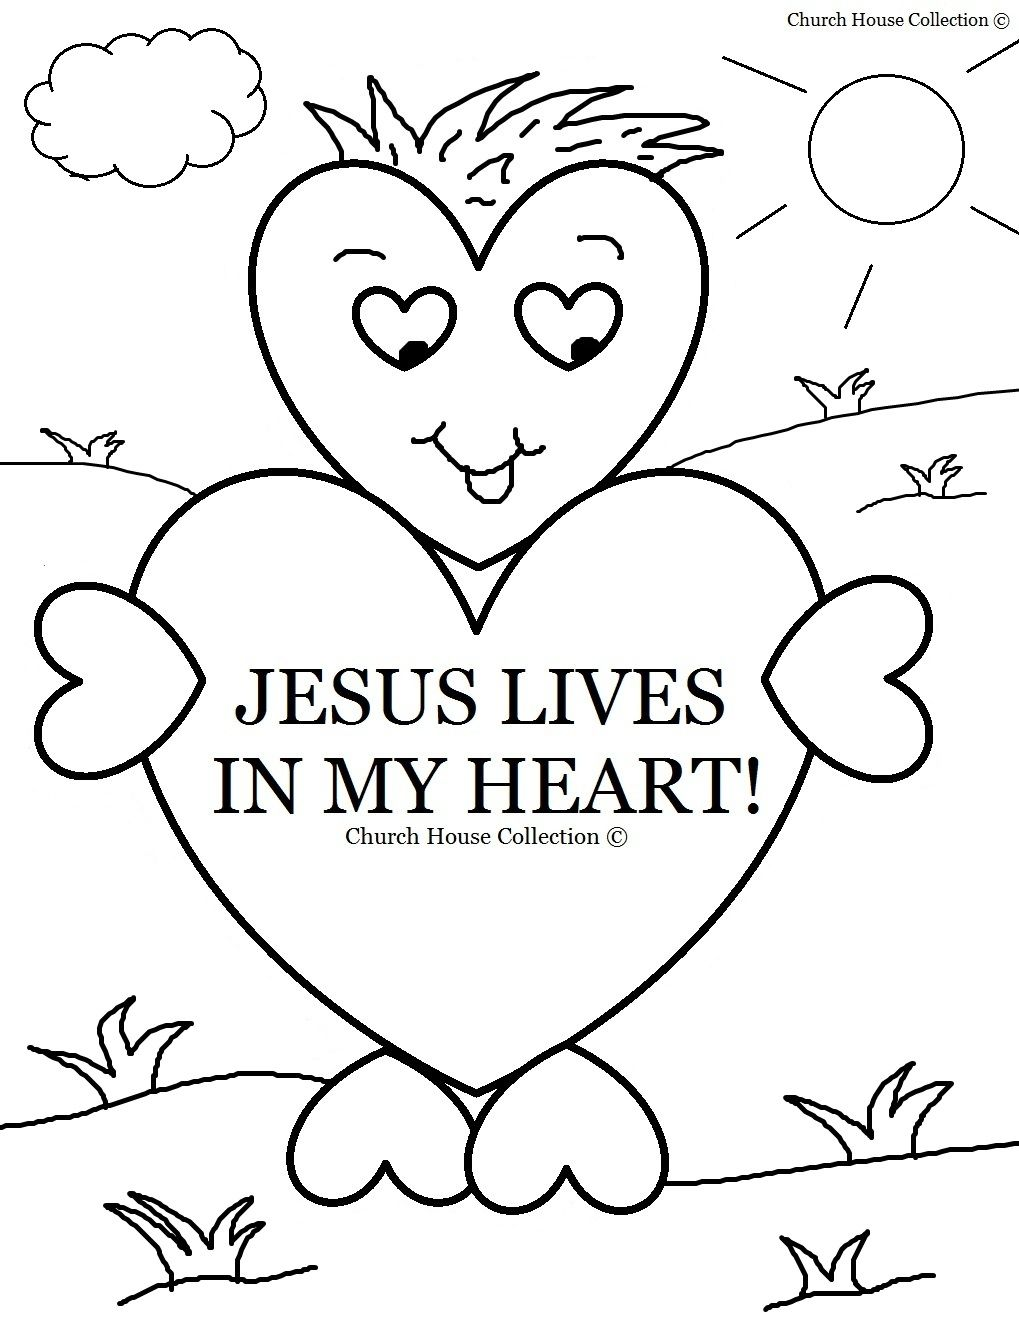 Sunday school coloring pages lives in my heart coloring page for sunday jesus liveschildren churchchildren